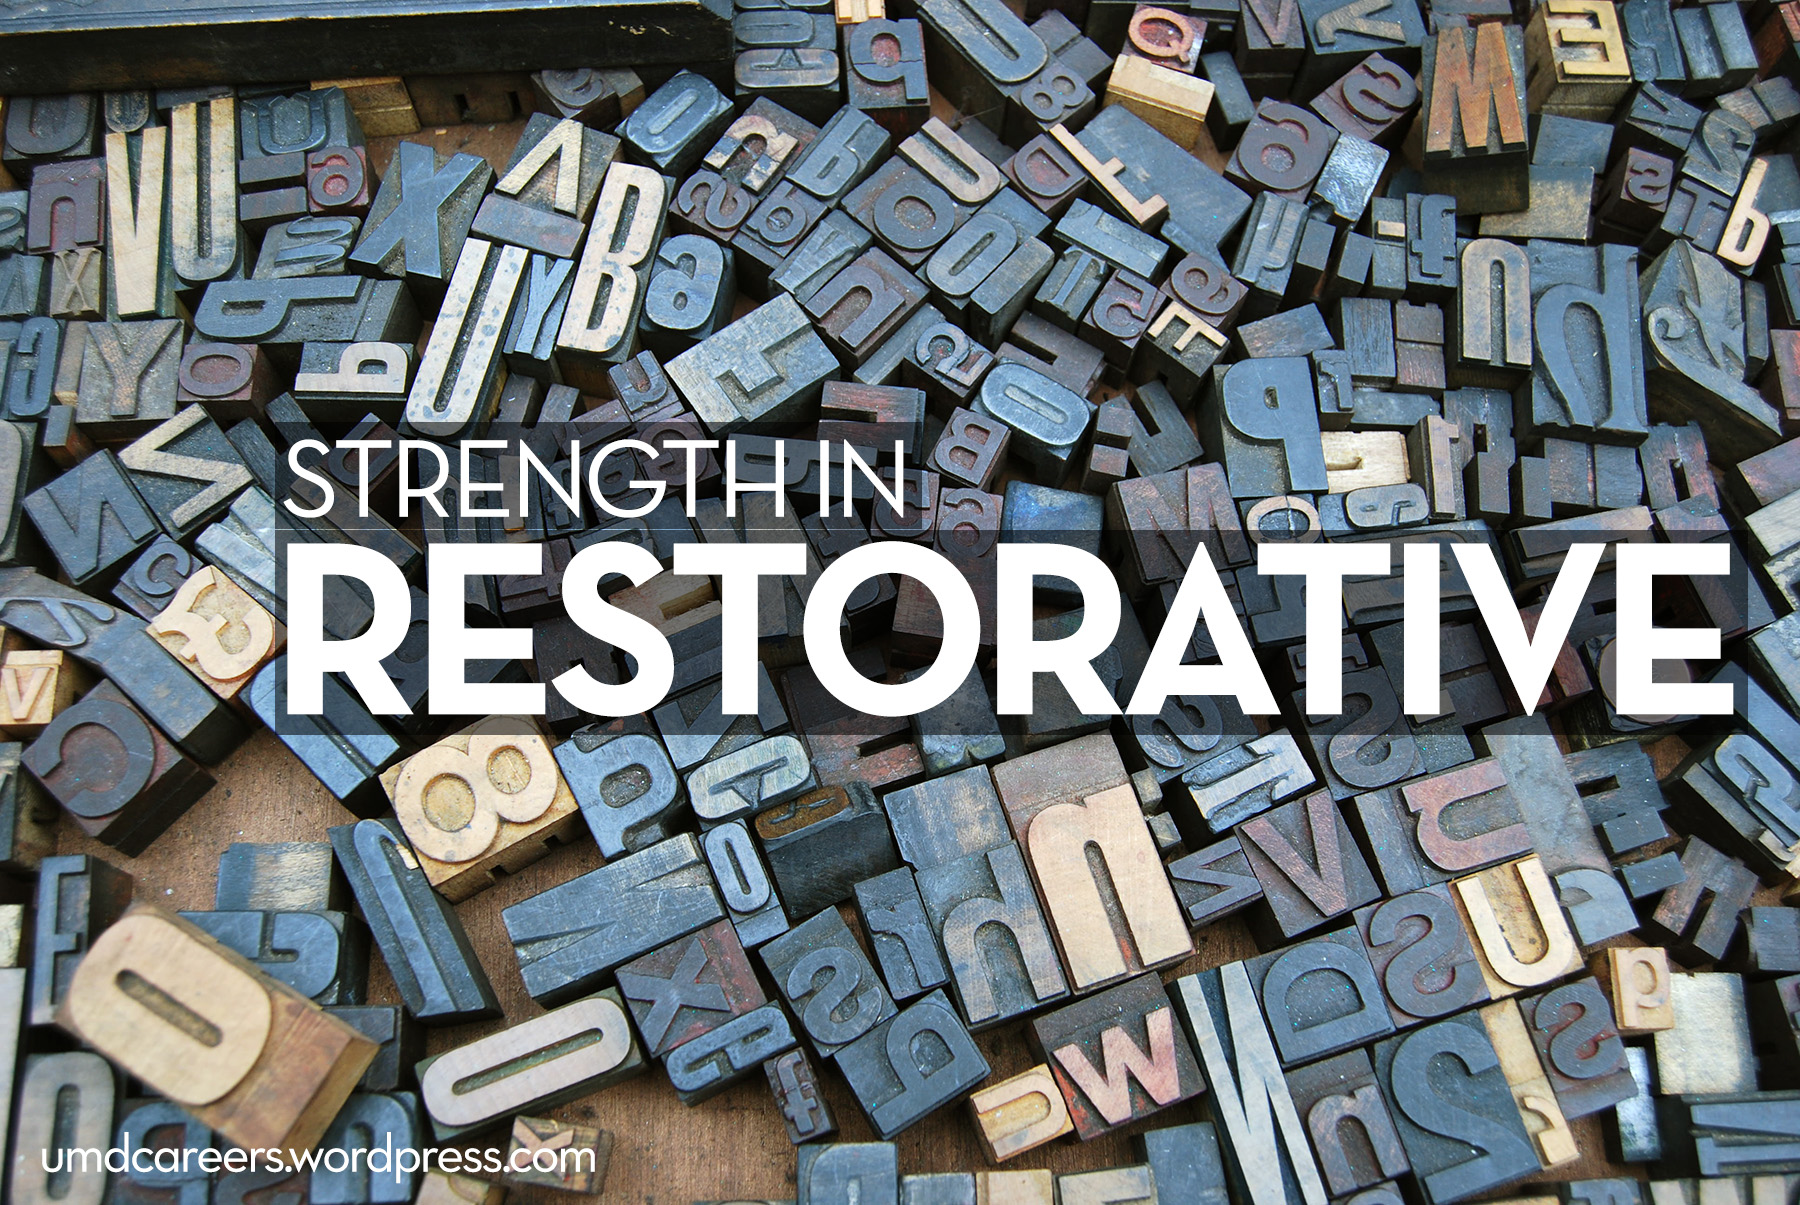 Image: block letters Text: Strength in Restorative